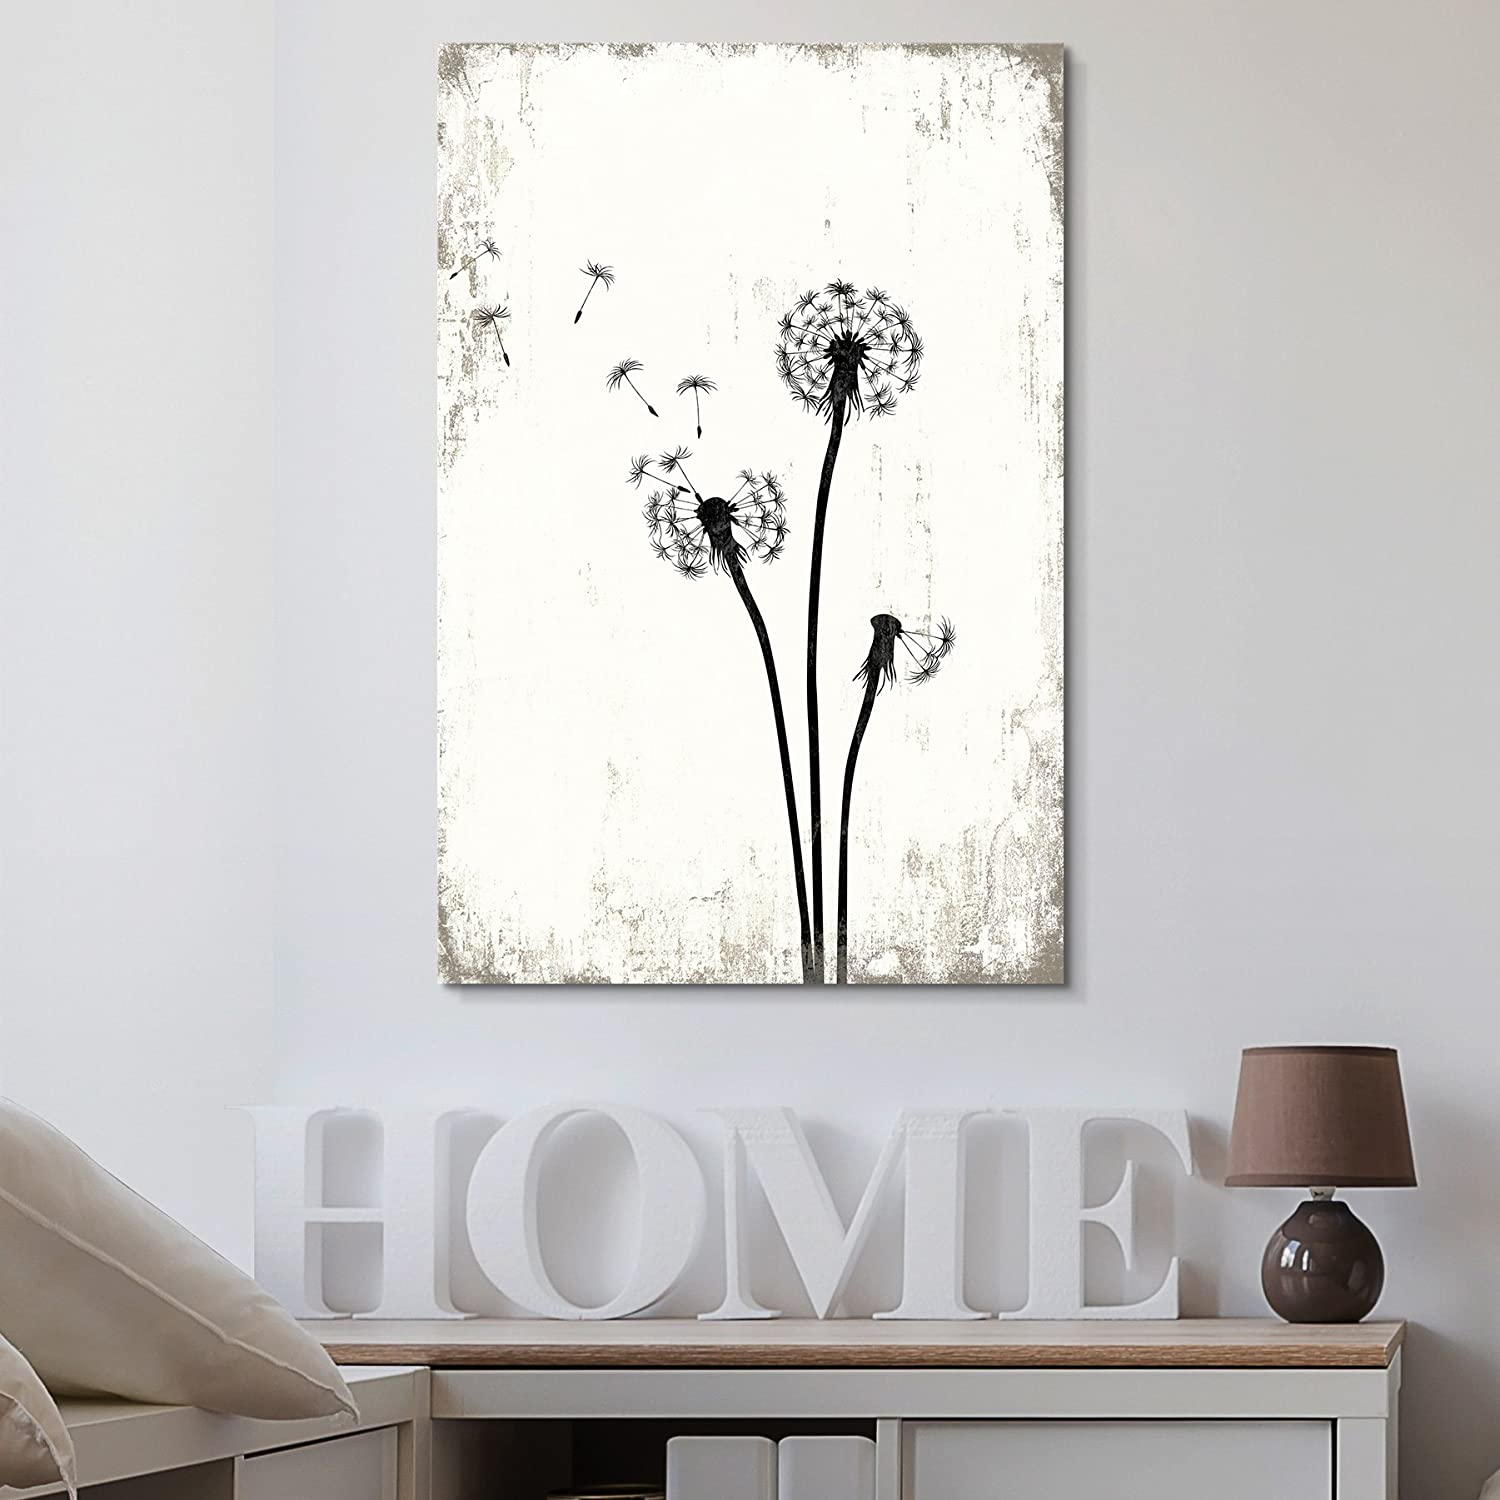 Dandelion Seeds on Rustic Background Wall Decor, That You Will Love, Dazzling Creative Design